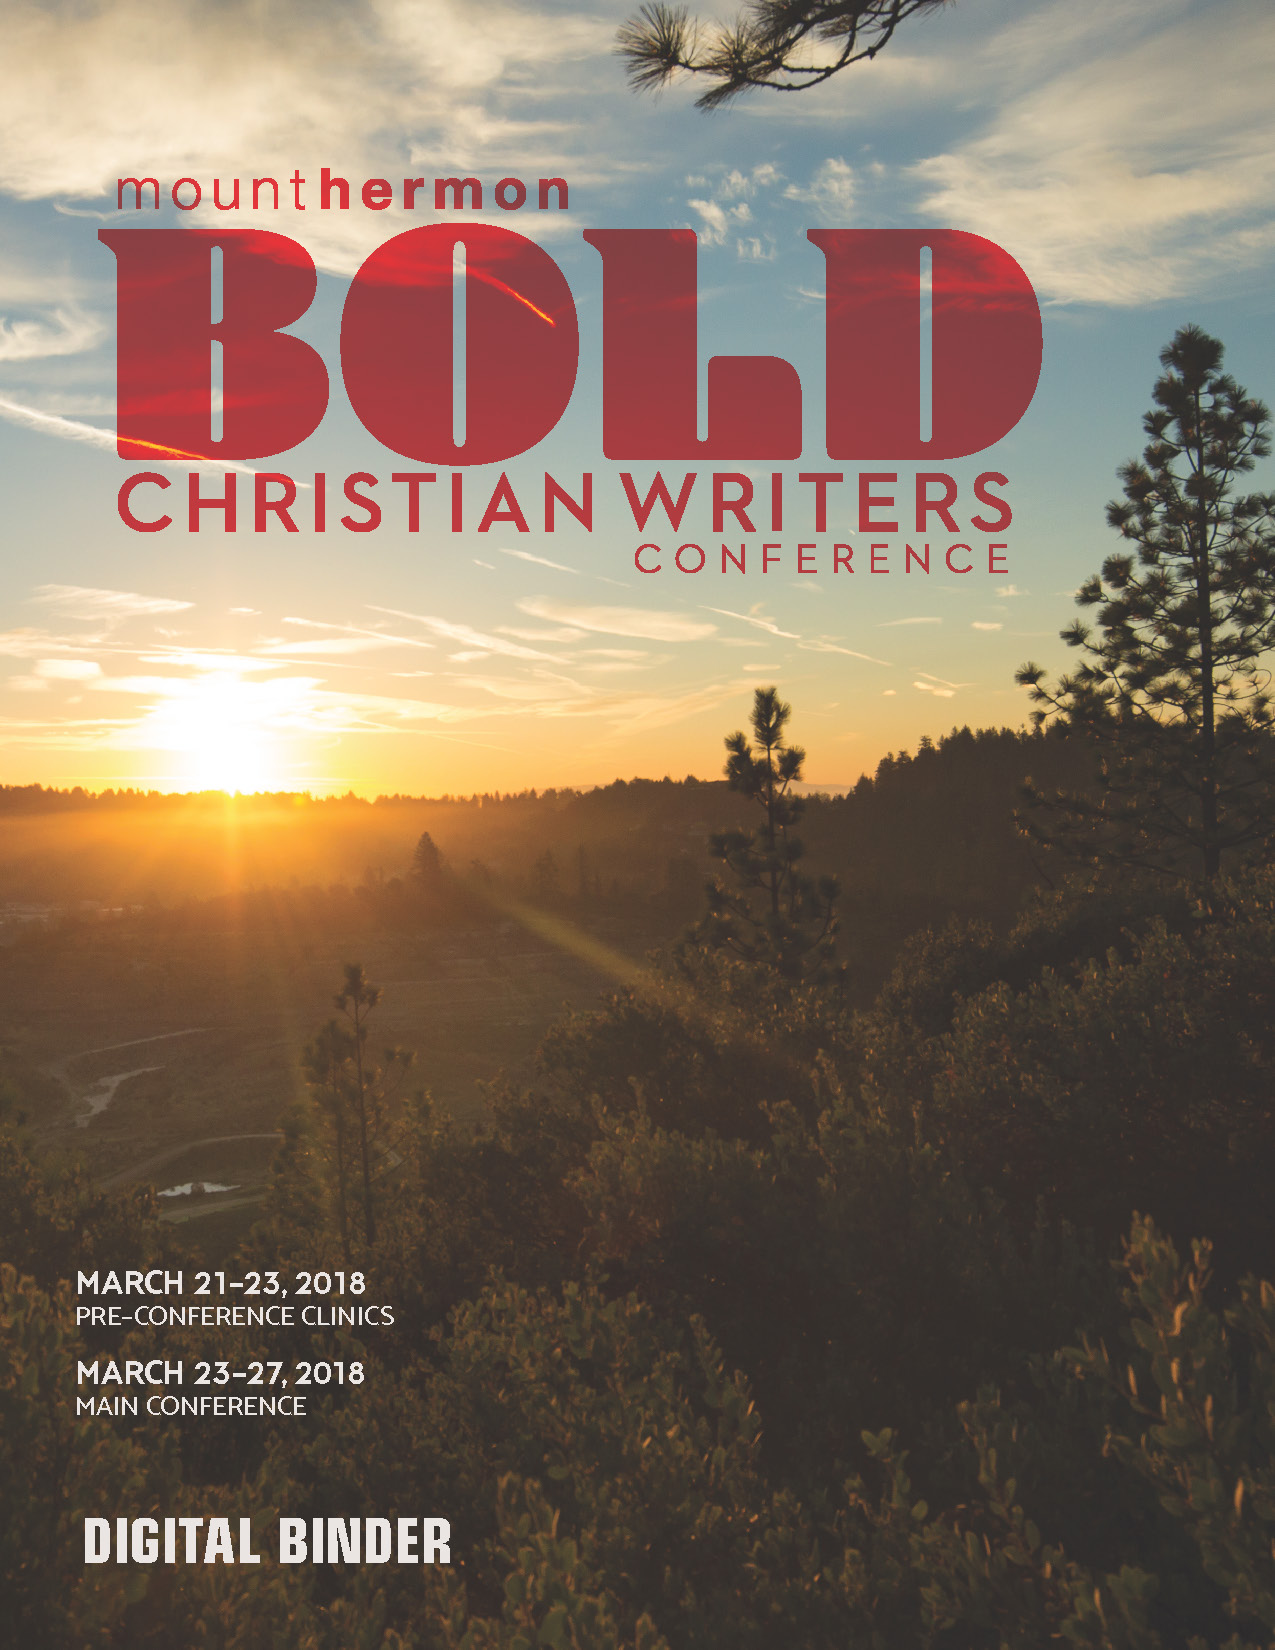 2018 Christian Writers Conference Online Binder